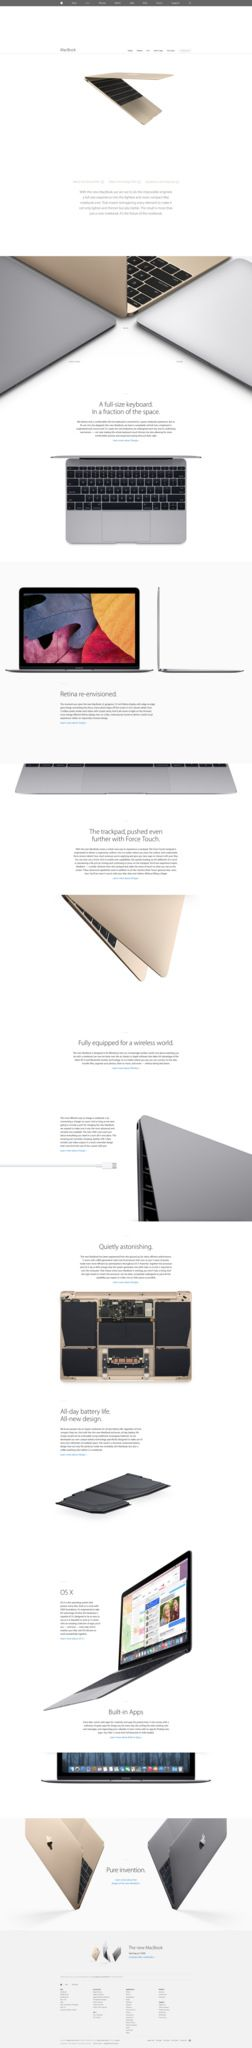 https://flic.kr/p/remi9Z | Apple - MacBook 3